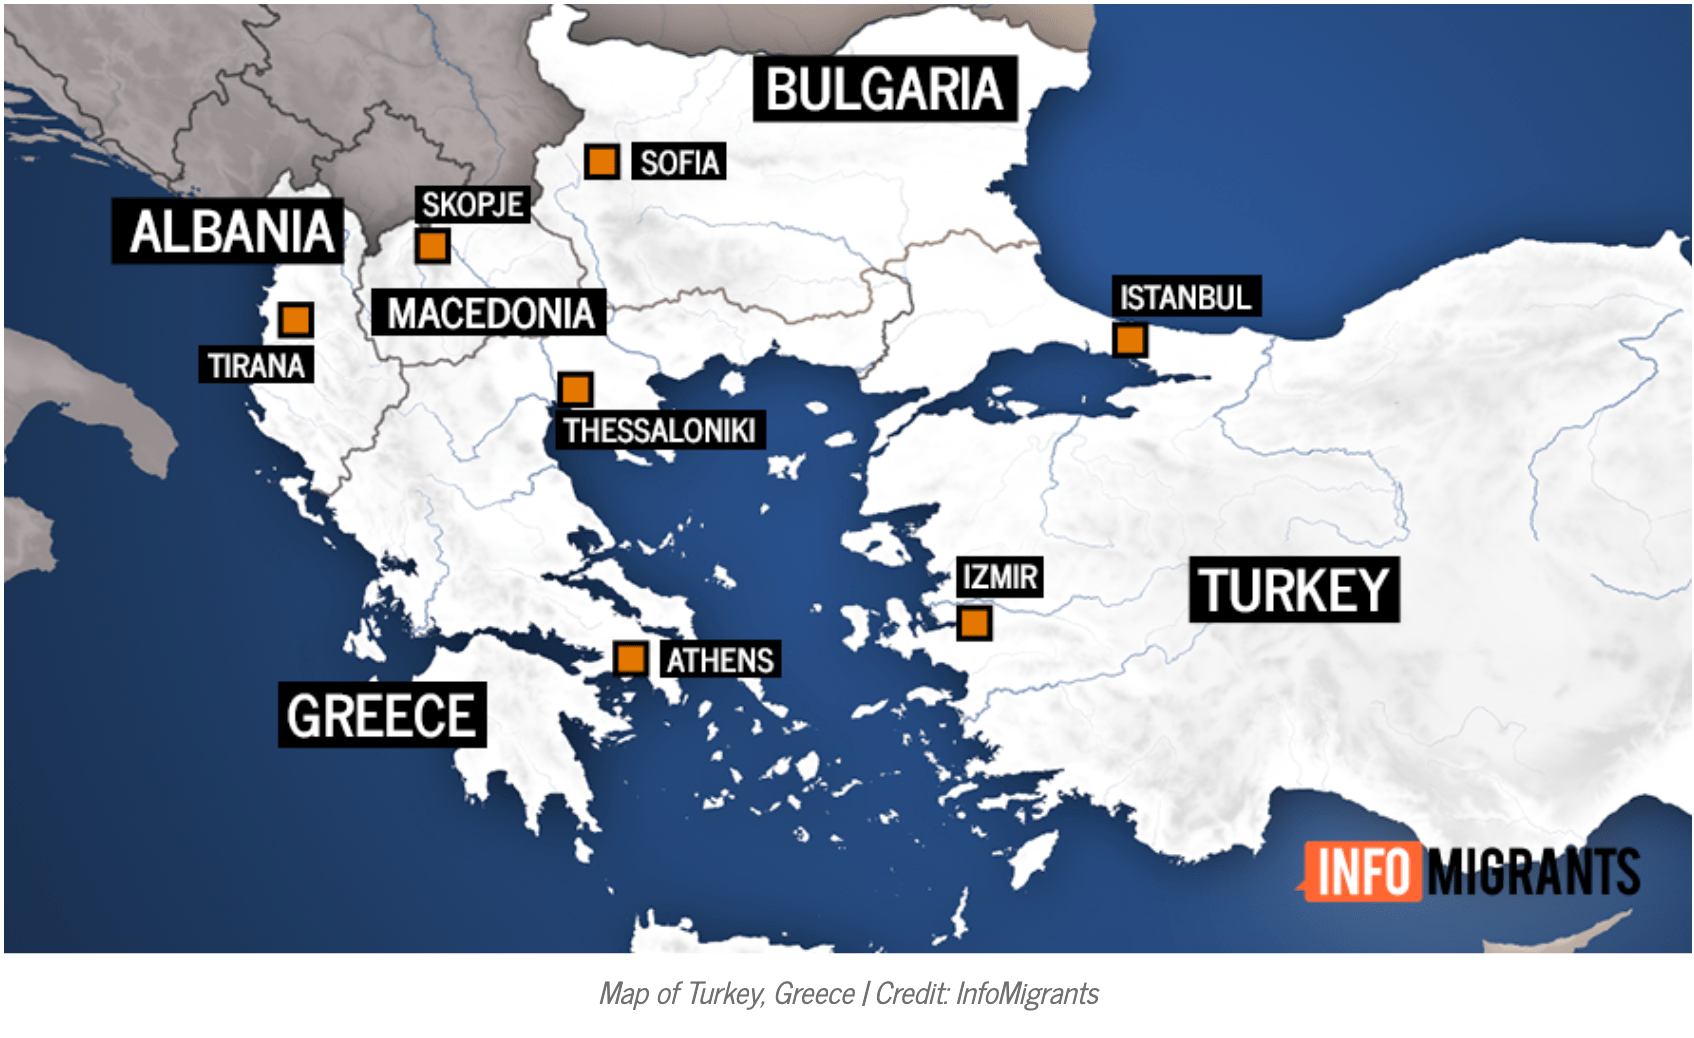 Precarious situation in Turkey drives refugees to Greece — InfoMigrants